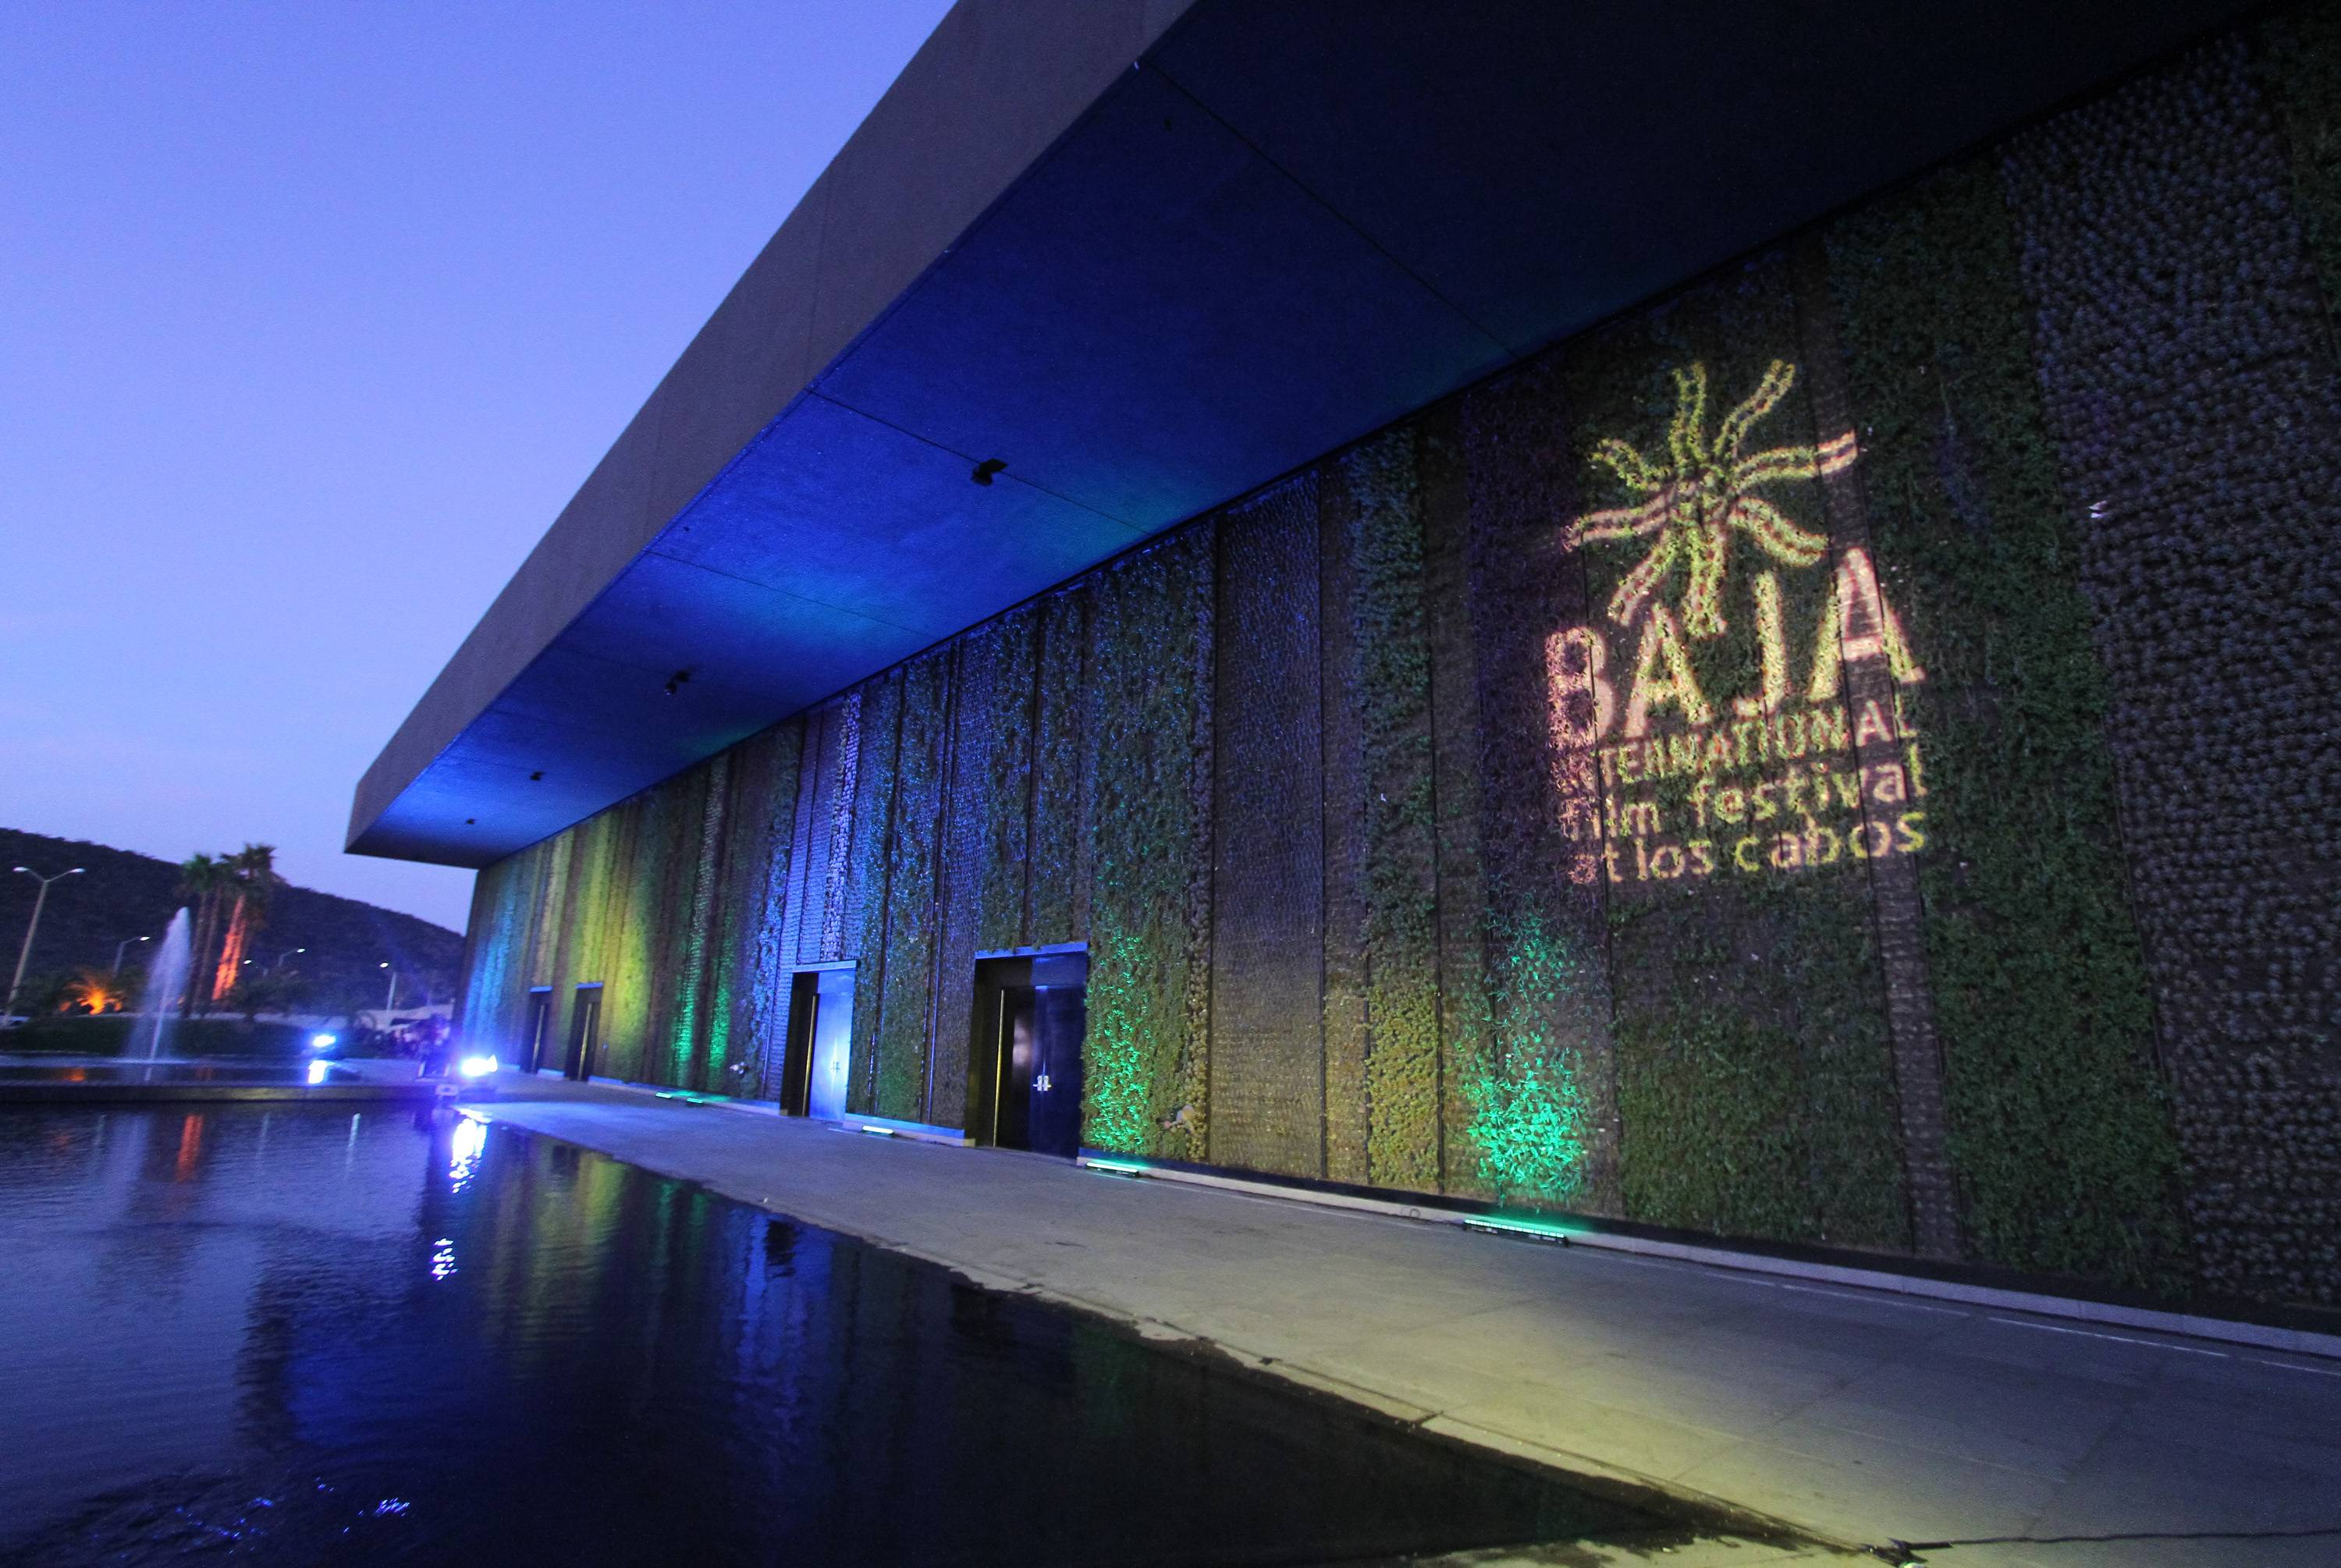 Baja International Film Festival - Day 1